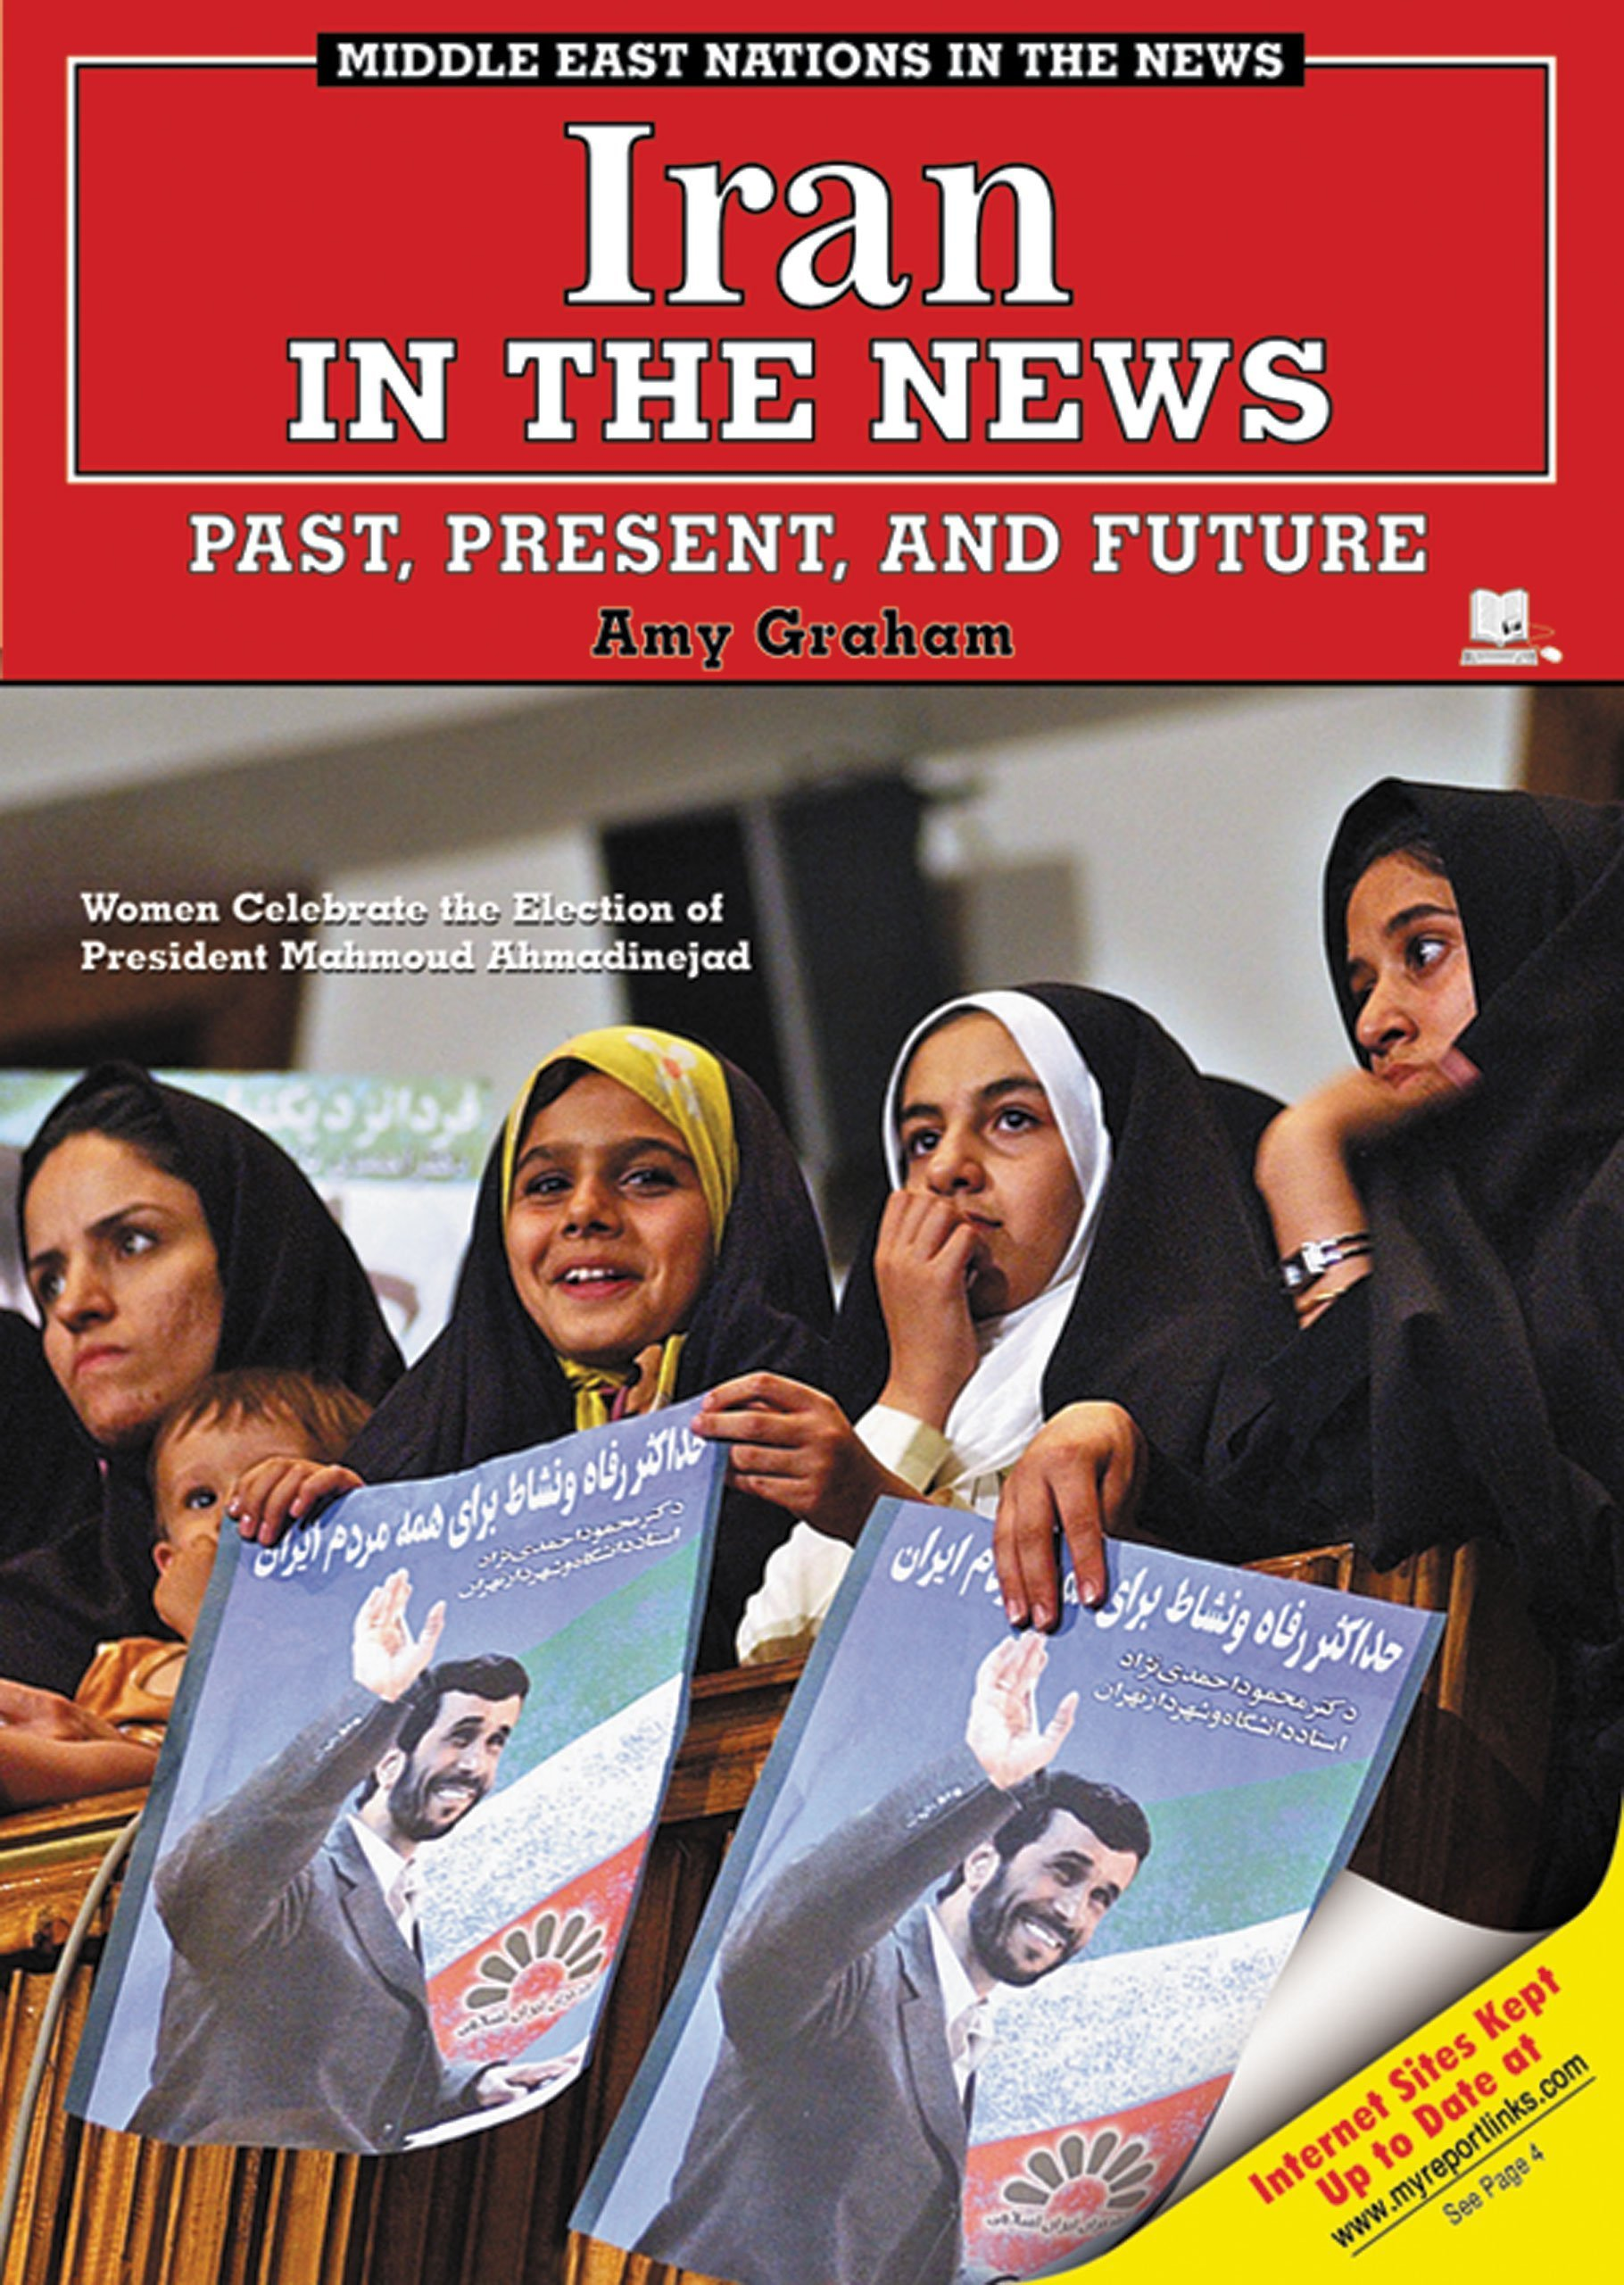 Iran in the News: Past, Present, and Future (Middle East Nations in the News) pdf